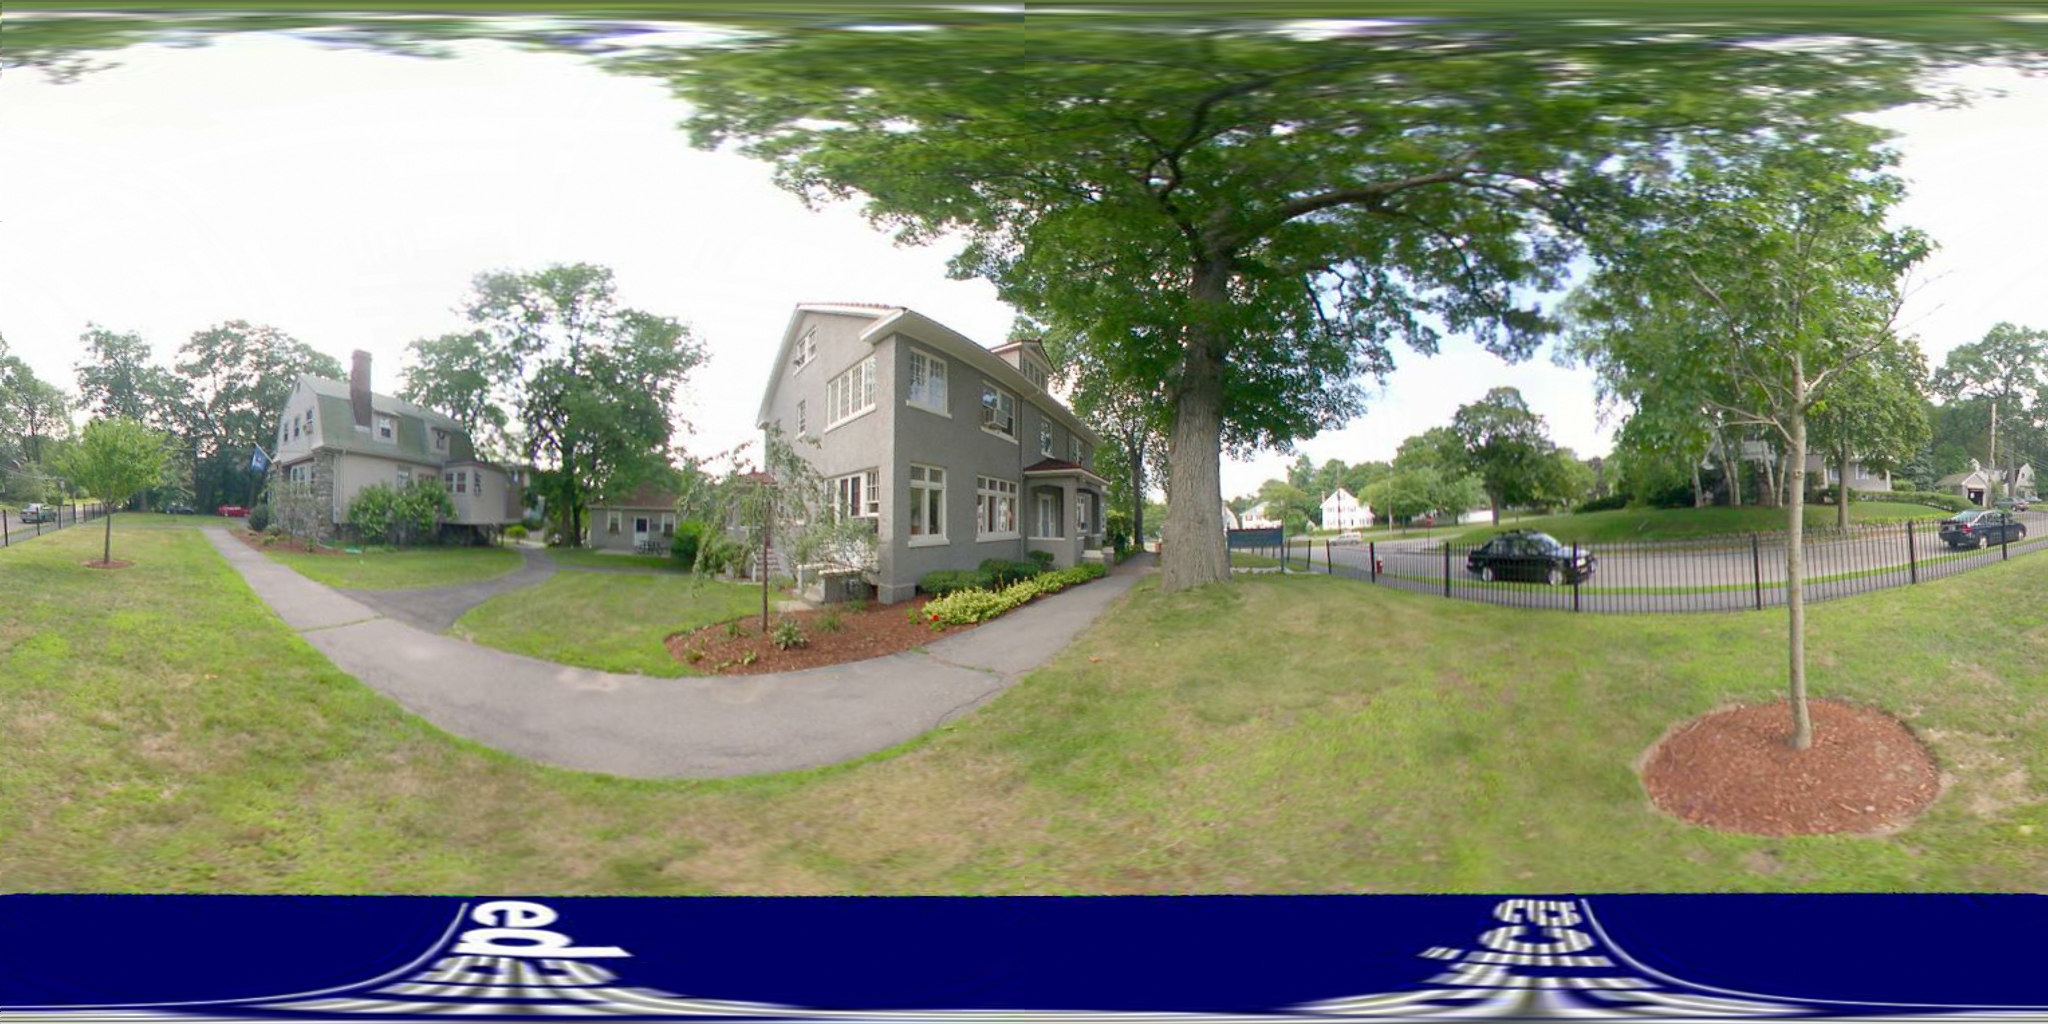 Lasell College Ecampustours